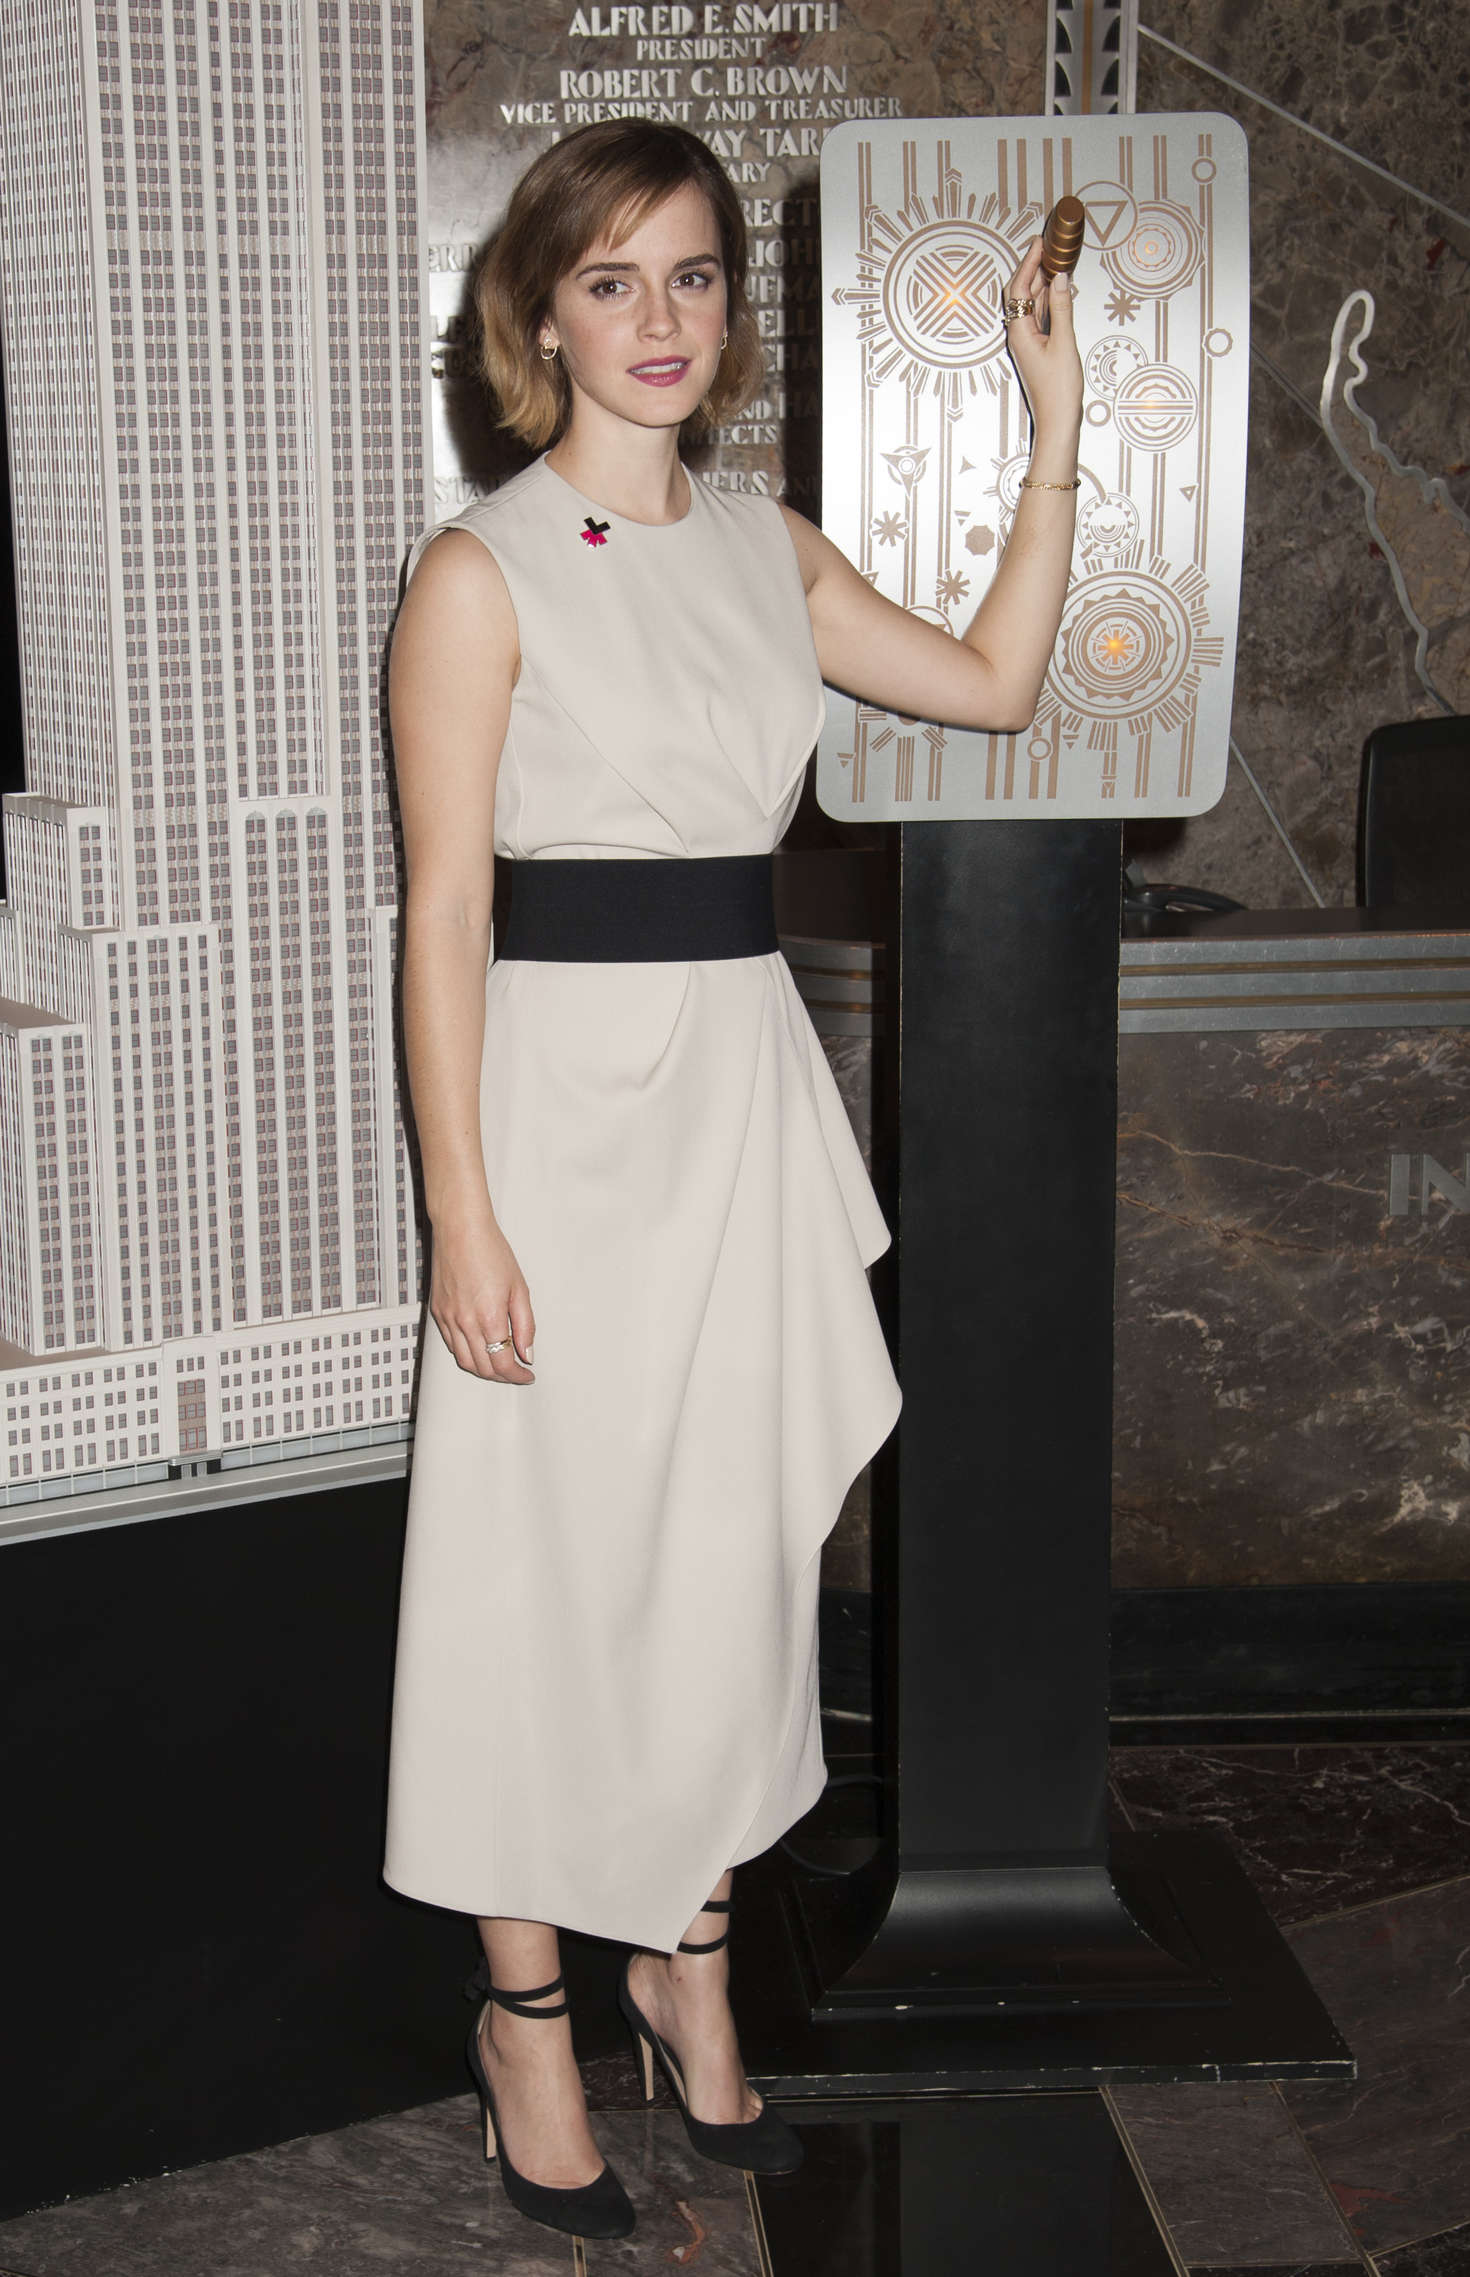 Emma Watson - Lights The Empire State Building for International Women's Day in NYC